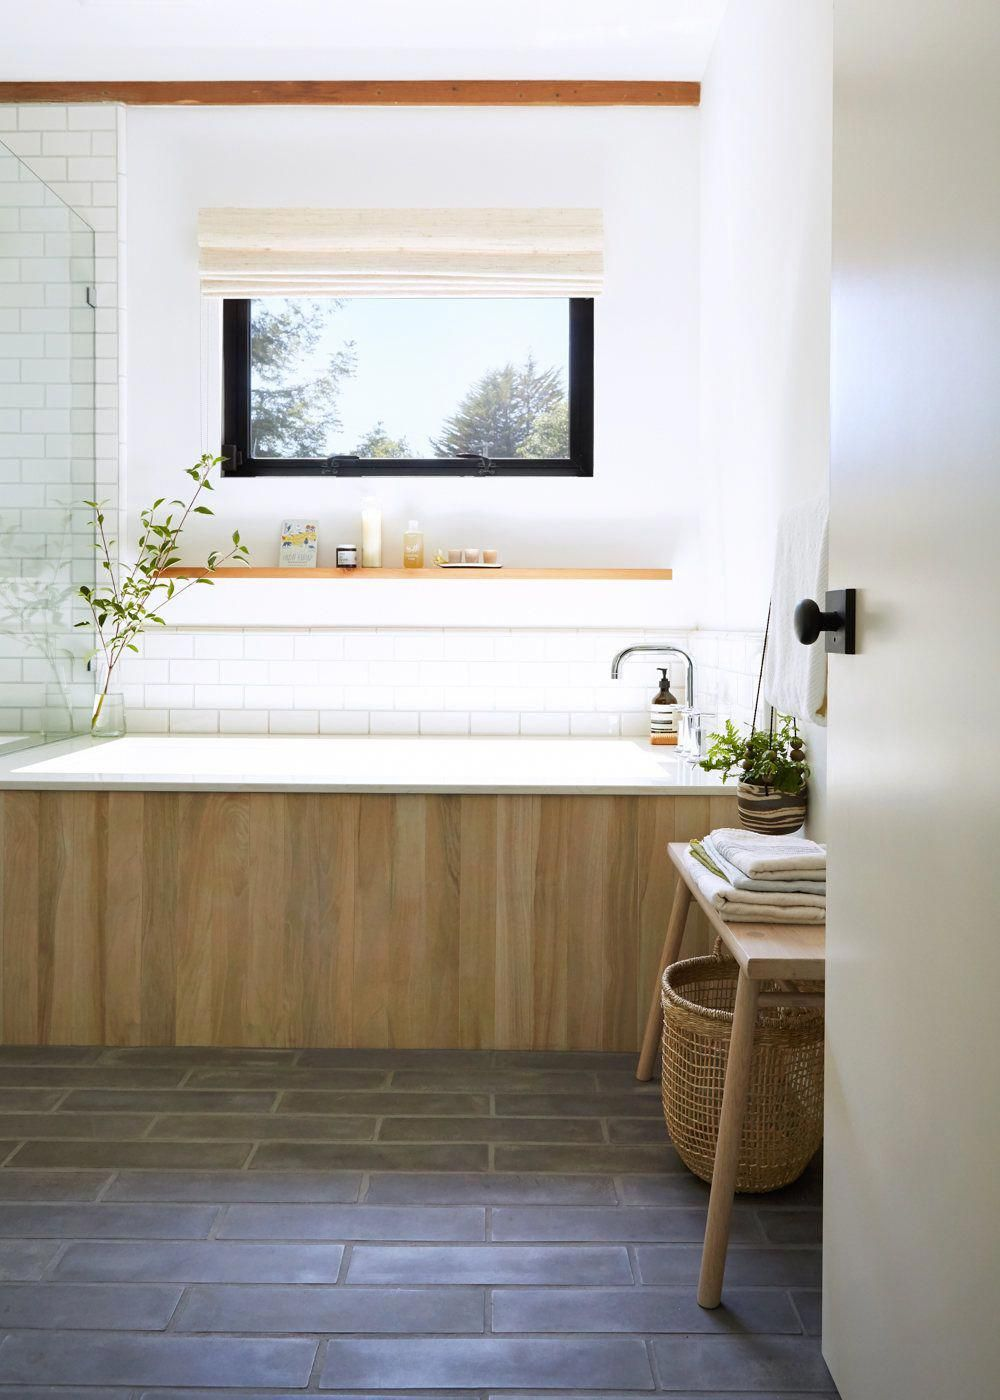 Photo of Bathroom of the Week: A Spa-Like Sanctuary in a Sonoma County Cottage – Remodelista